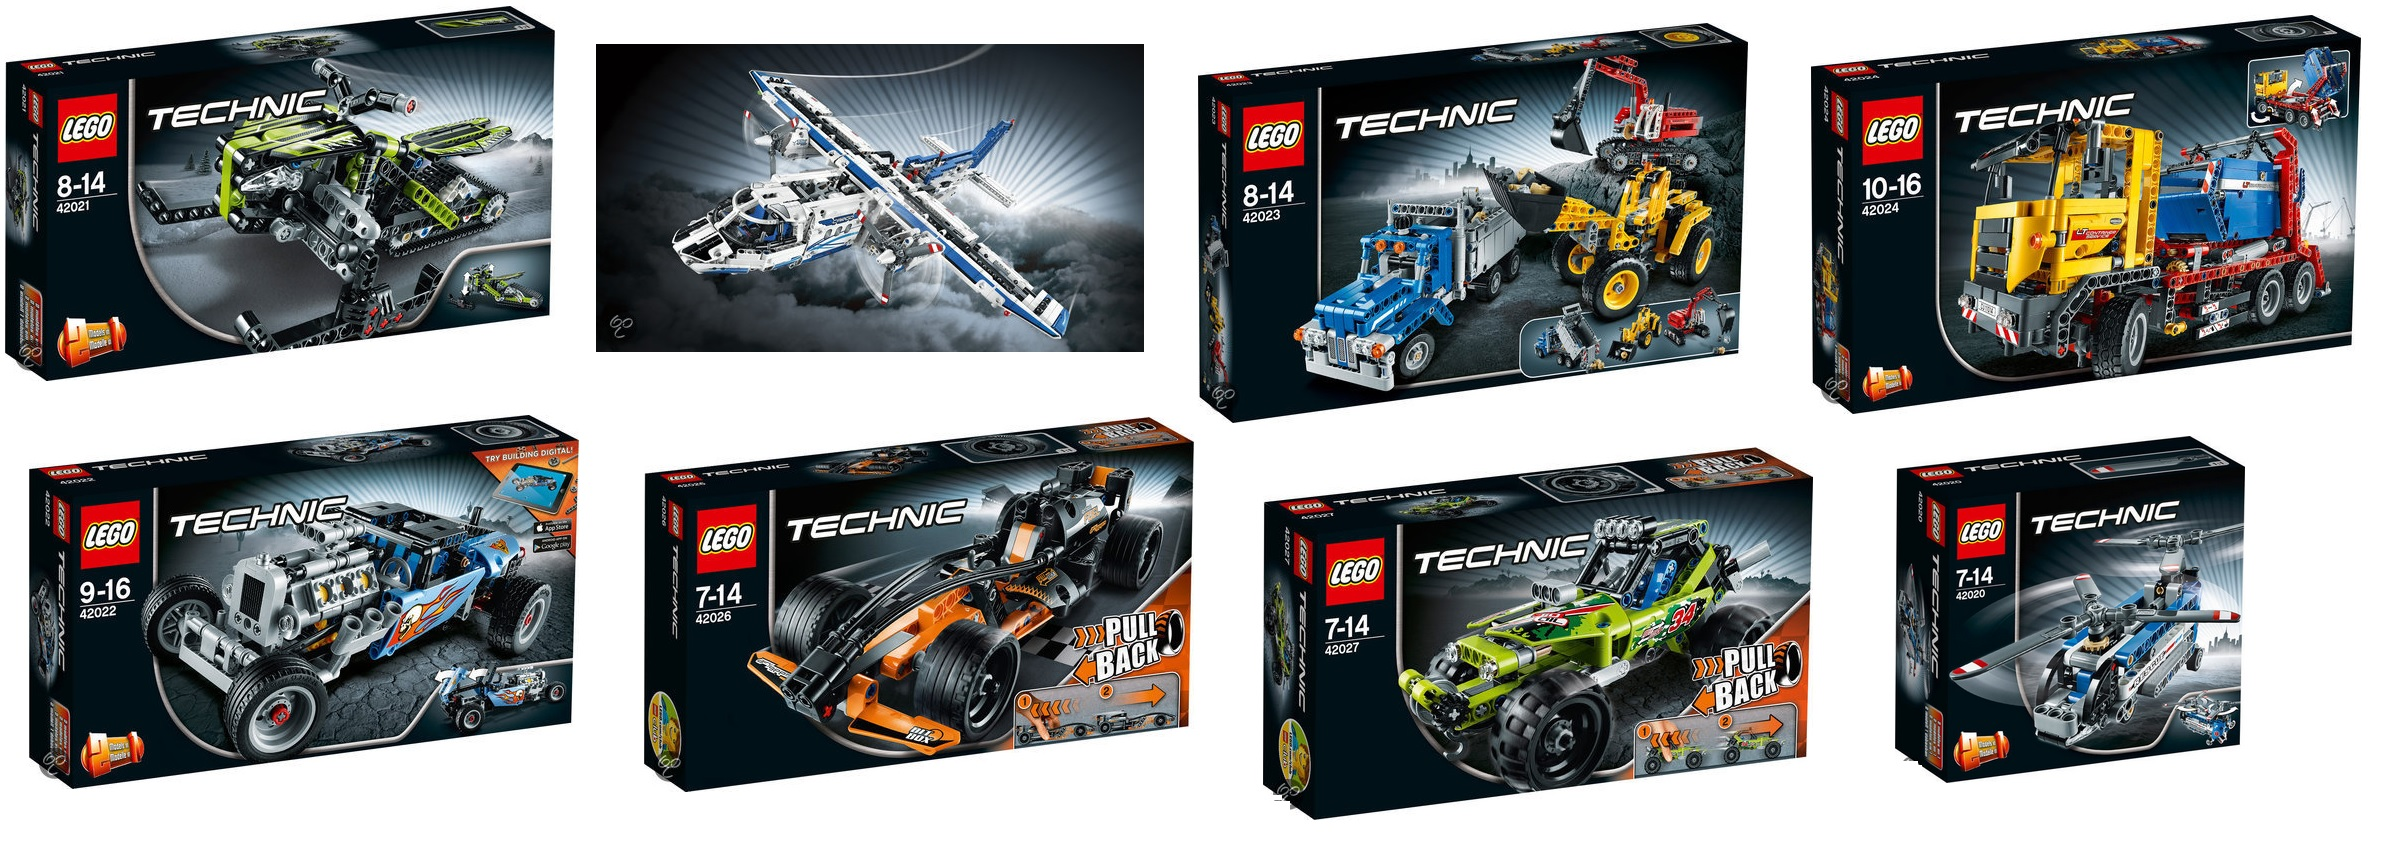 lego technic 2014 2014 lego technic sets 42021. Black Bedroom Furniture Sets. Home Design Ideas